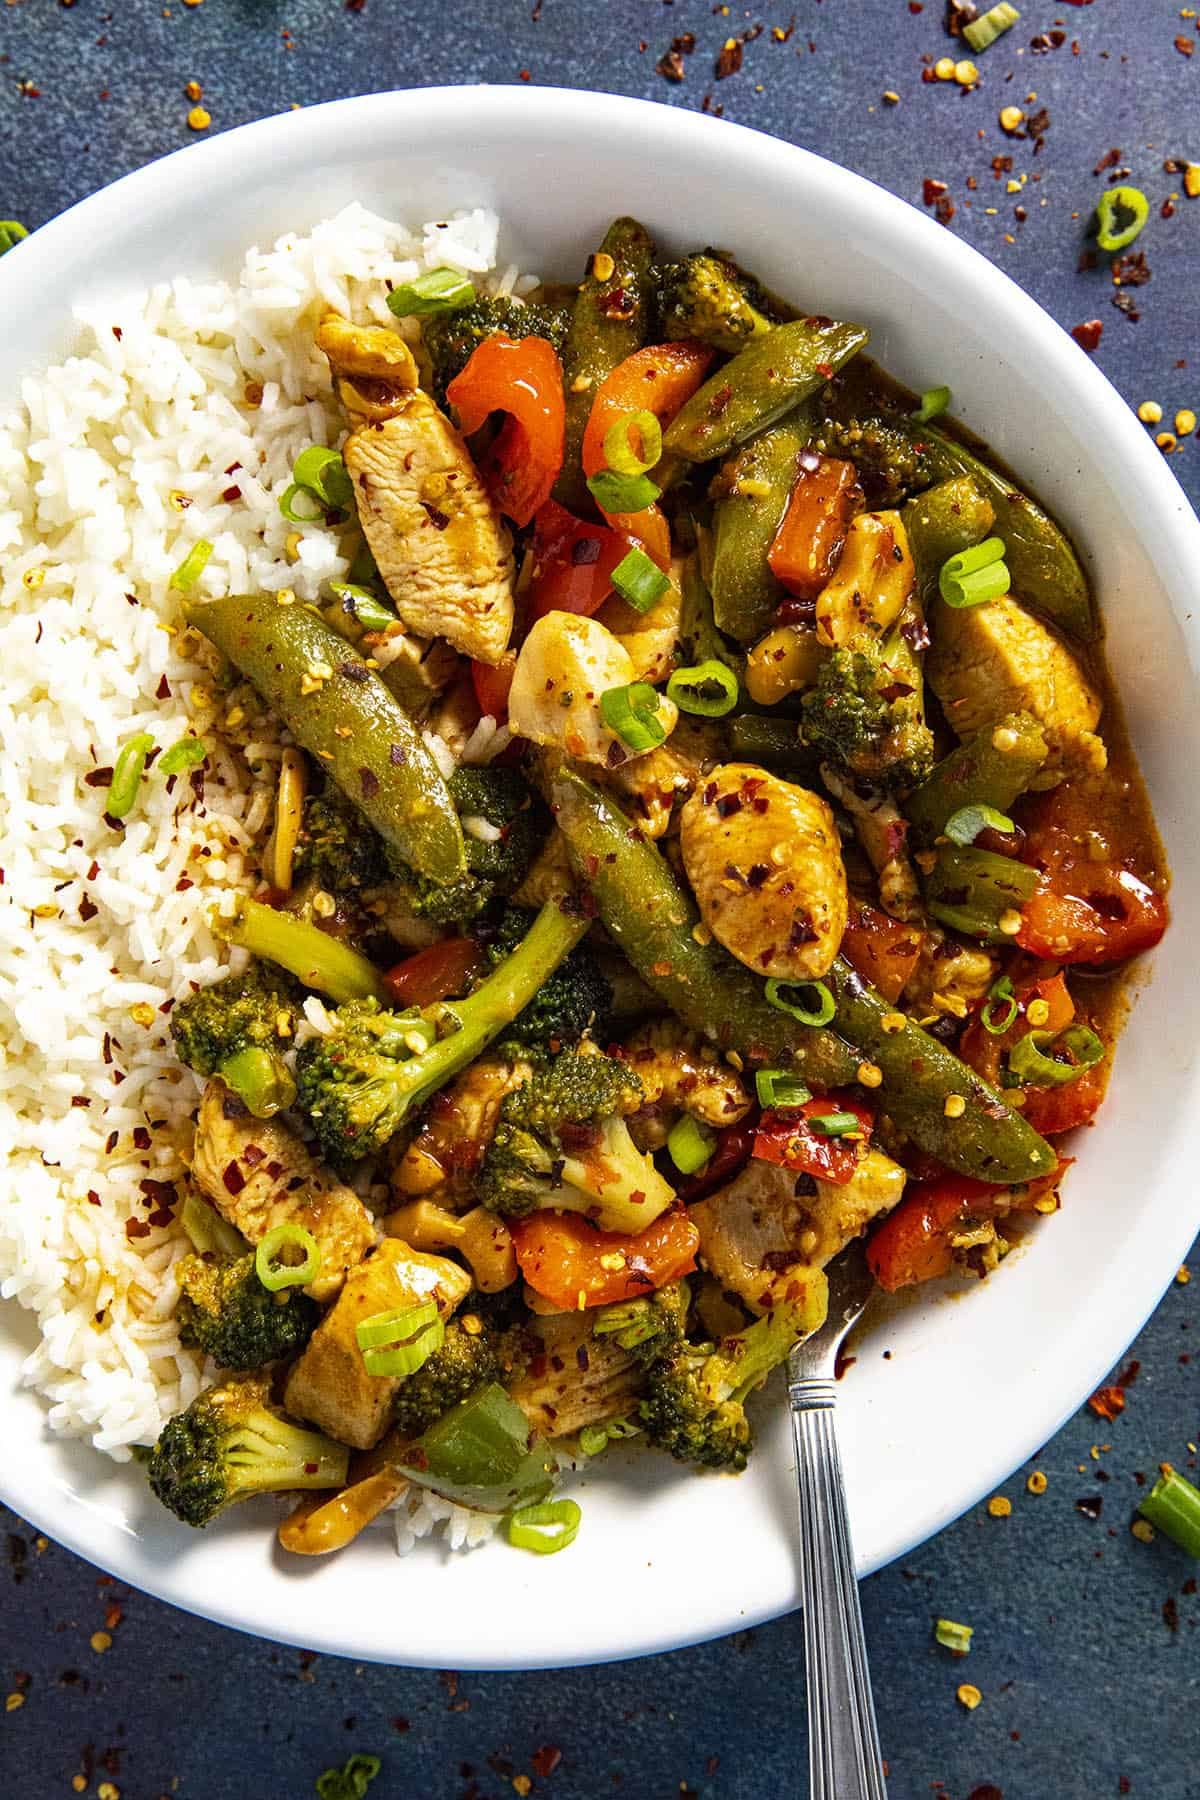 Chicken Stir Fry in a bowl with white rice